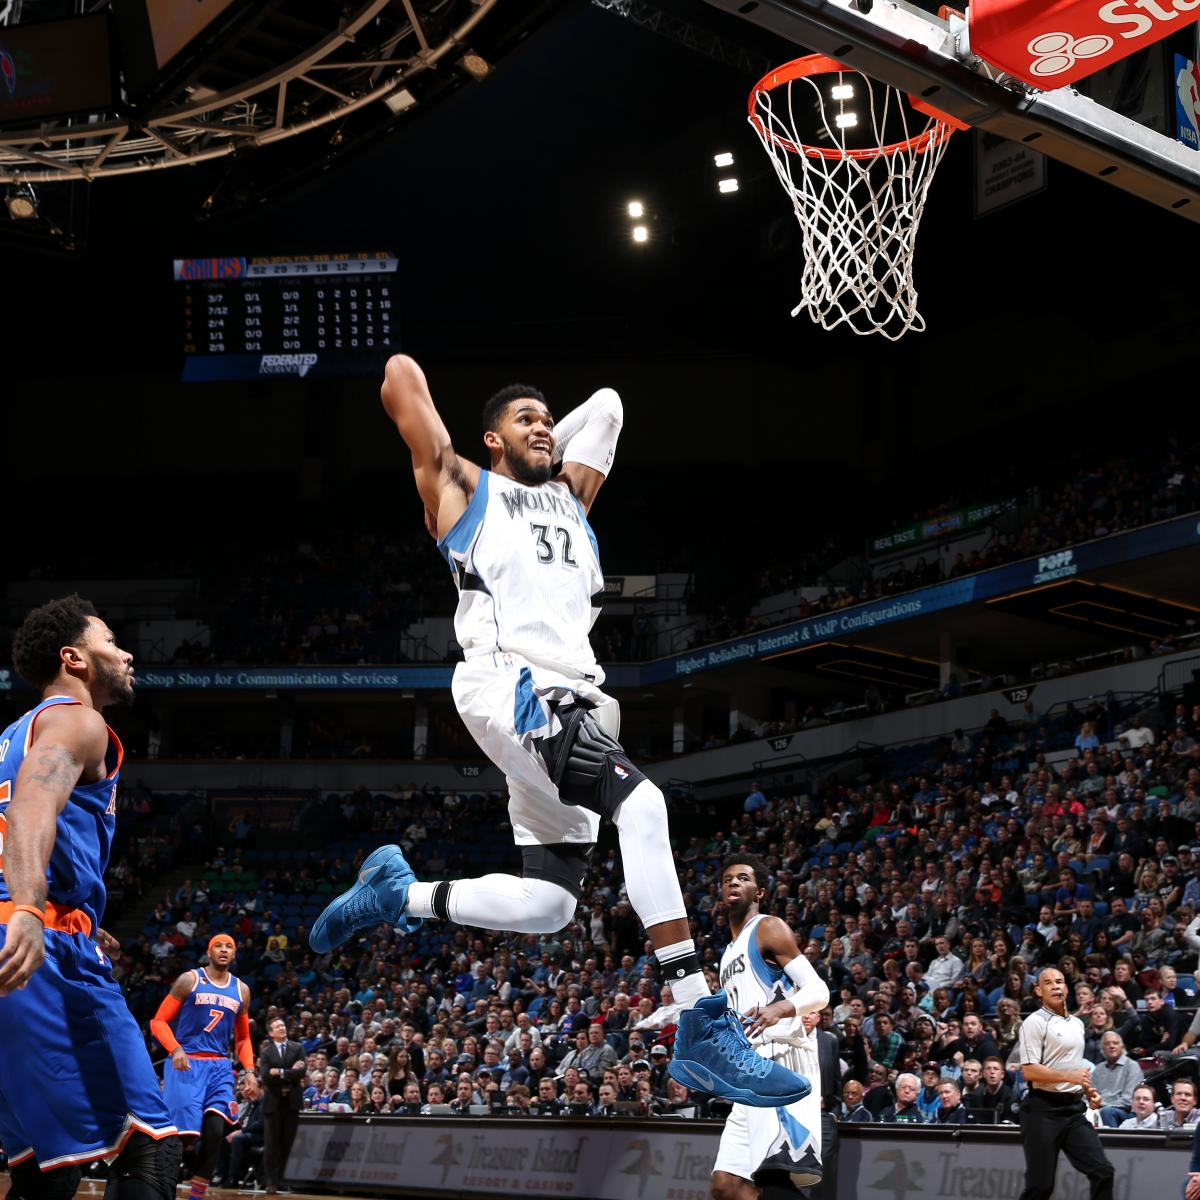 Colorado Shooting R H Youtube Com: Karl-Anthony Towns Vs. Knicks: Stats, Highlights And